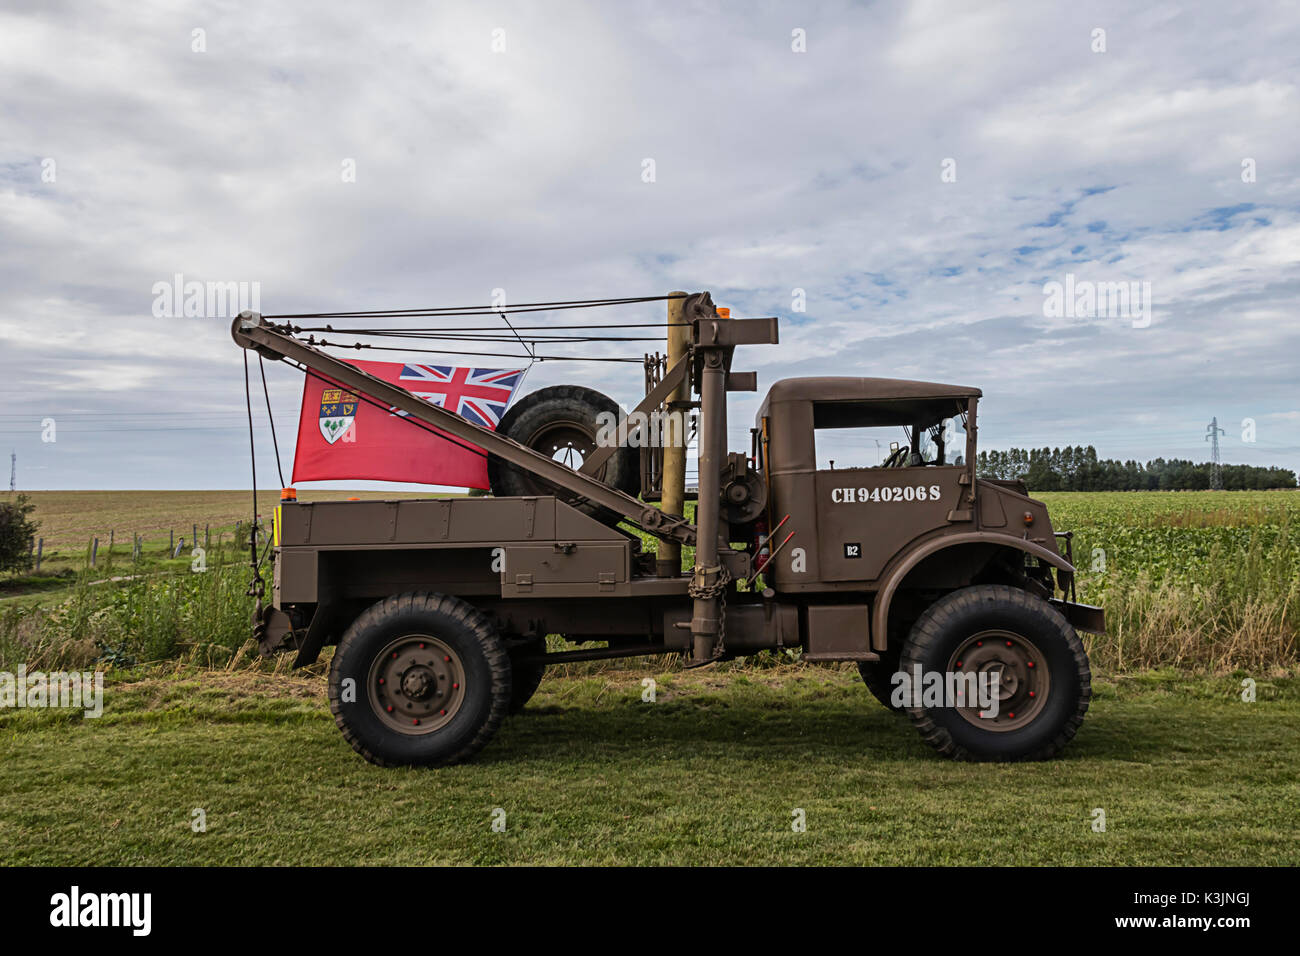 all terrain armored transport stock photos all terrain armored transport stock images alamy. Black Bedroom Furniture Sets. Home Design Ideas